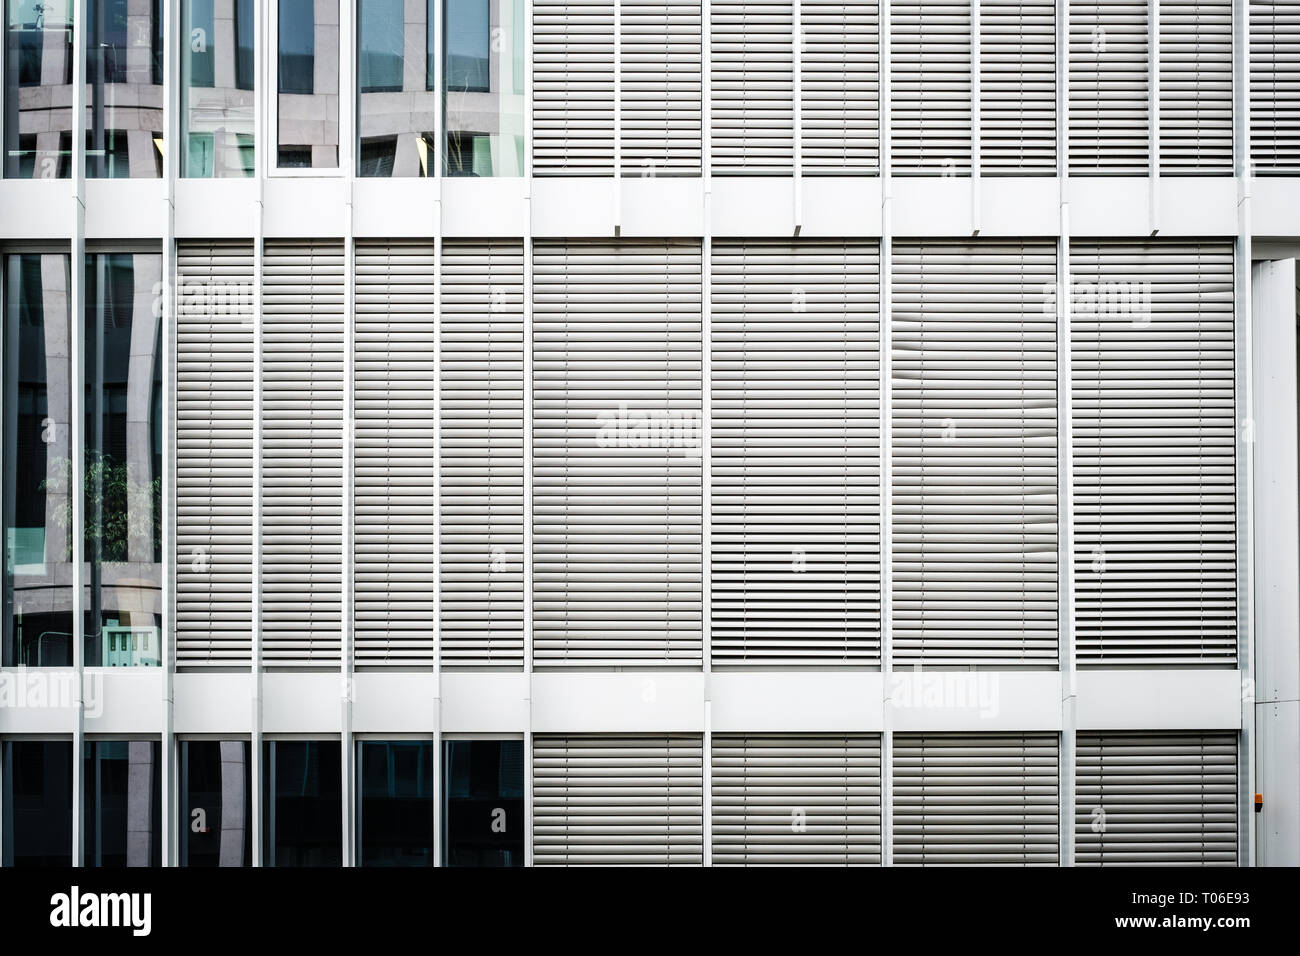 Closed Sun Blinds On Office Building Facade Real Estate Background Stock Photo Alamy